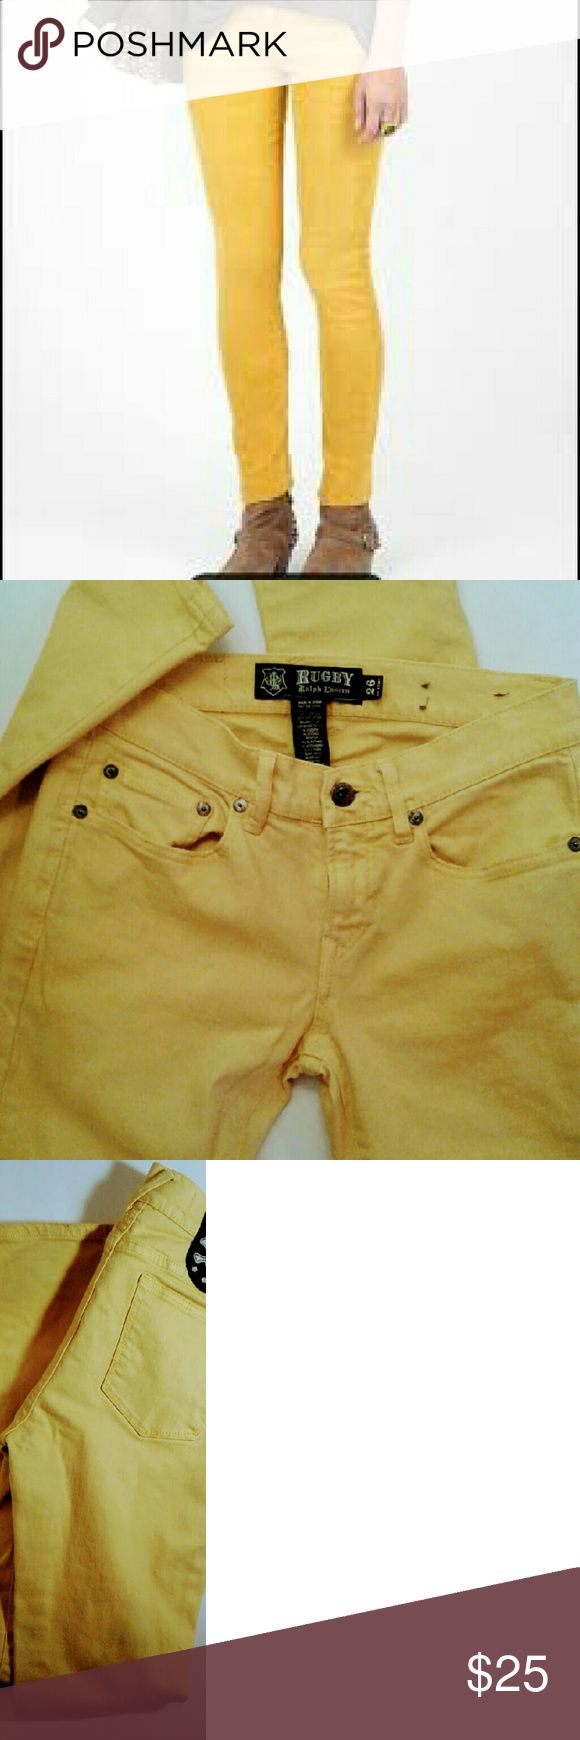 RUGBY Ralph Lauren Polo jeans Rugby Ralph Lauren Polo jeans 96% cotton 4% elastane... straight/ fitted ... machine wash cold insde out to reserve on color... Like New!!! No Stains ... excellent condition .. PRICE FIRM RUGBY RALPH LAUREN POLO  Jeans Skinny